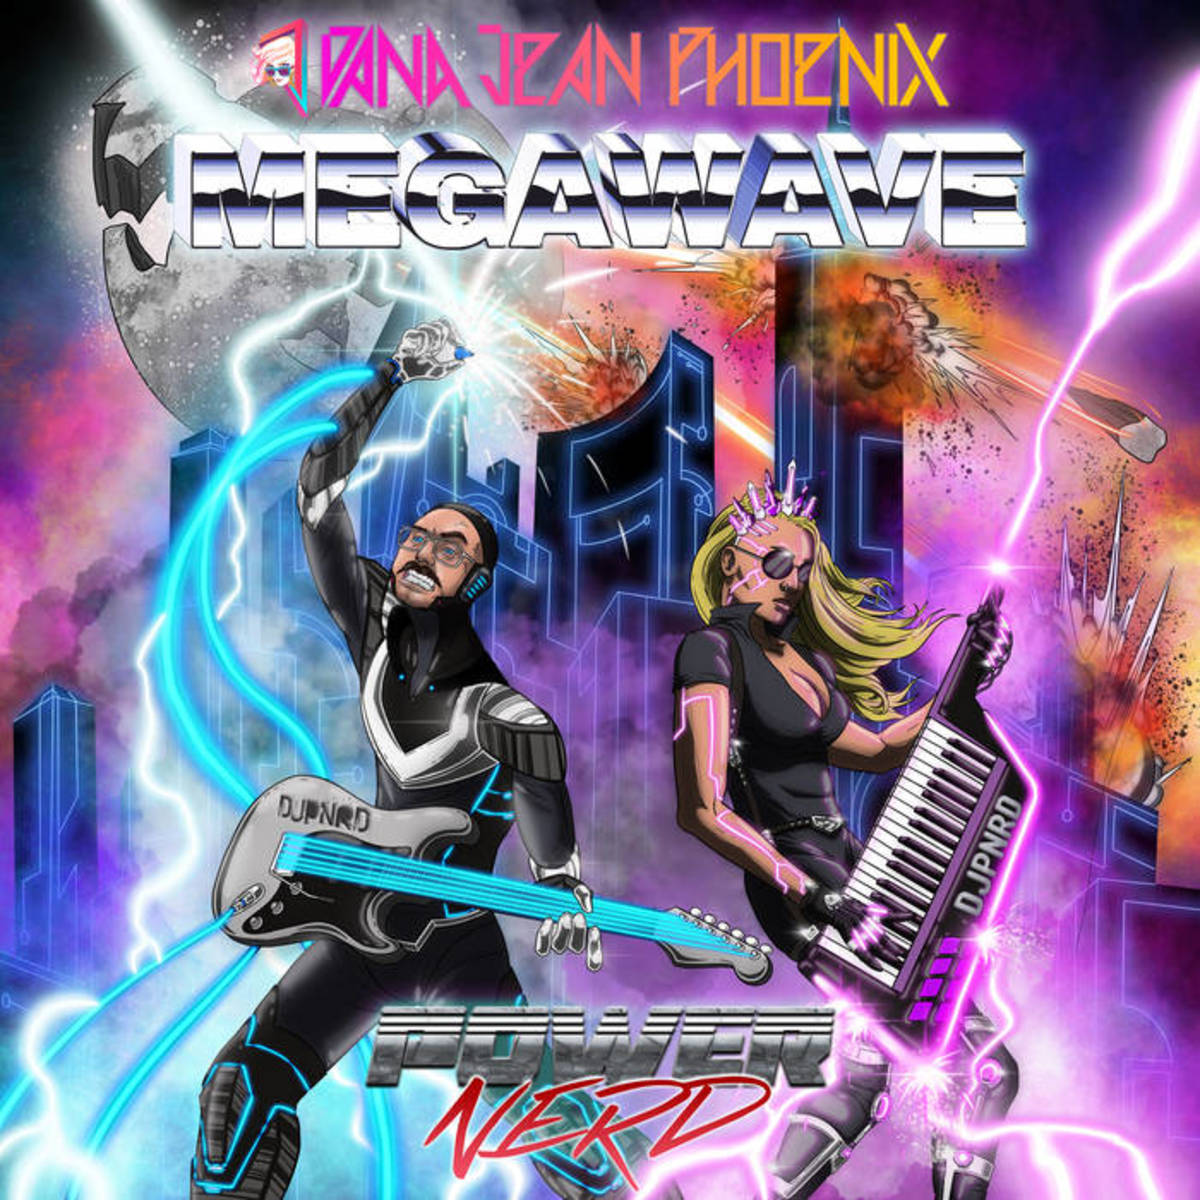 """Synthwave Single Review: """"Megawave"""" by Dana Jean Phoenix and Powernerd"""